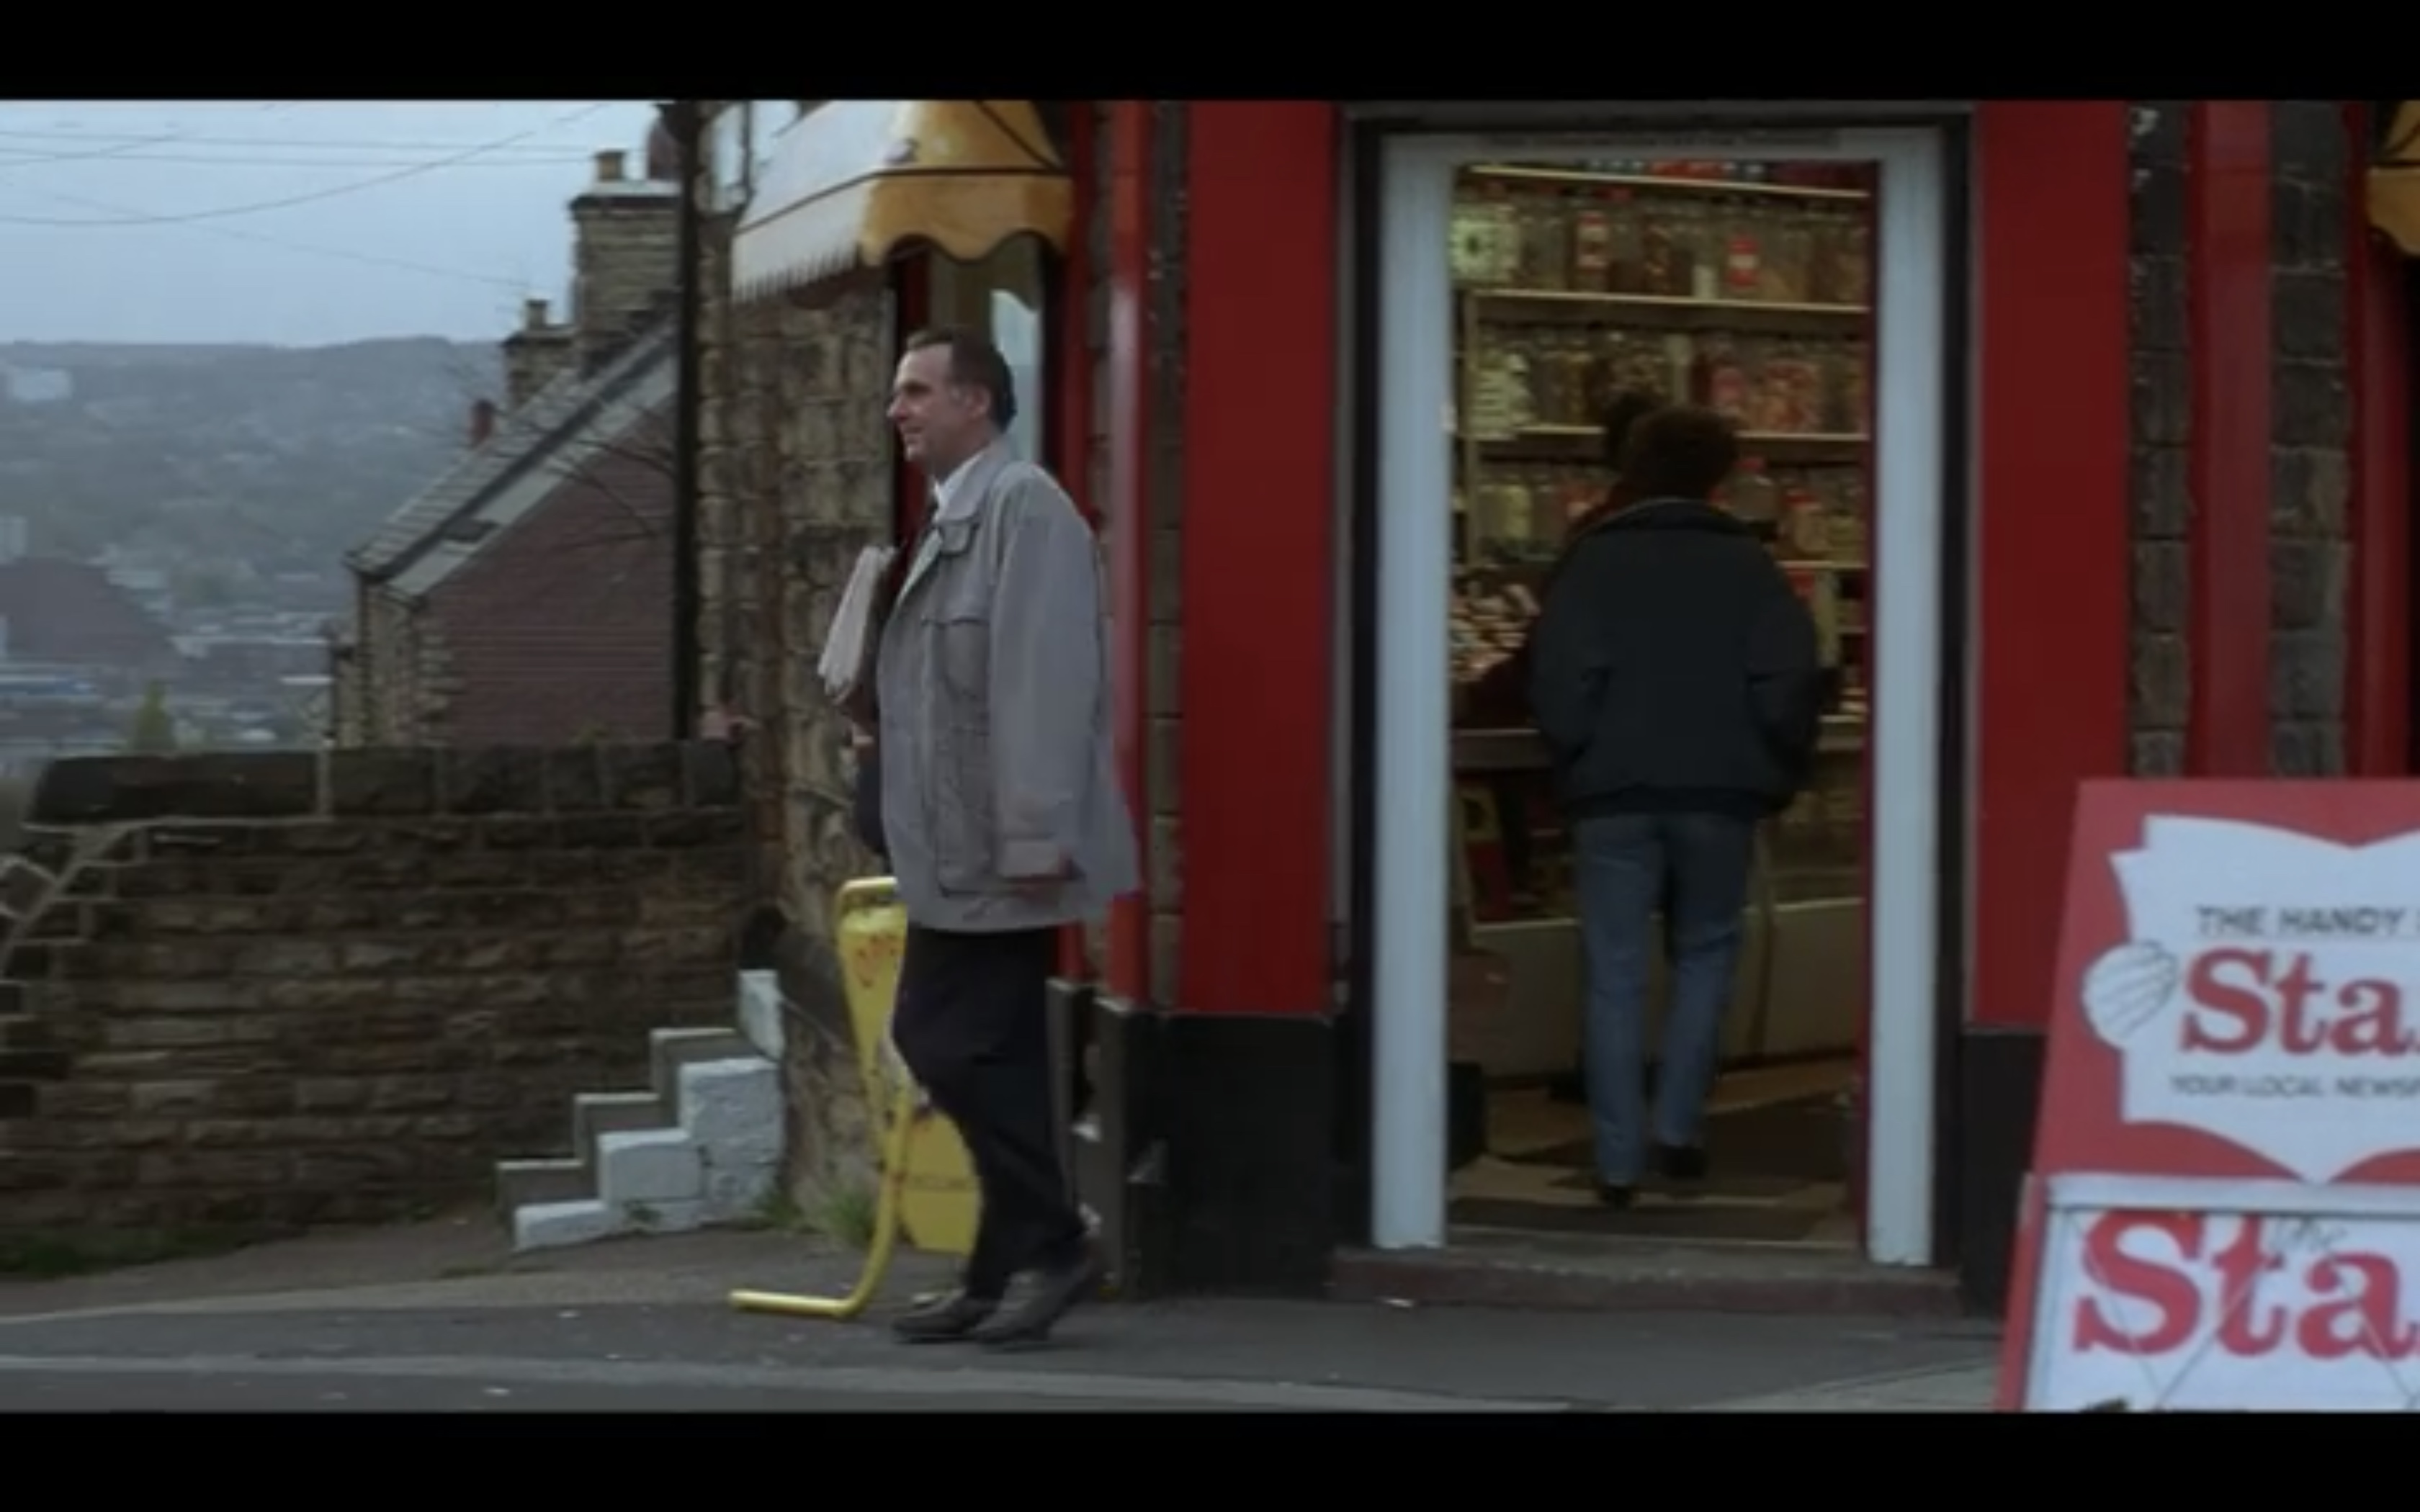 Gerald comes out of the Newsagents on Granville Road (Full Monty Filming Location)